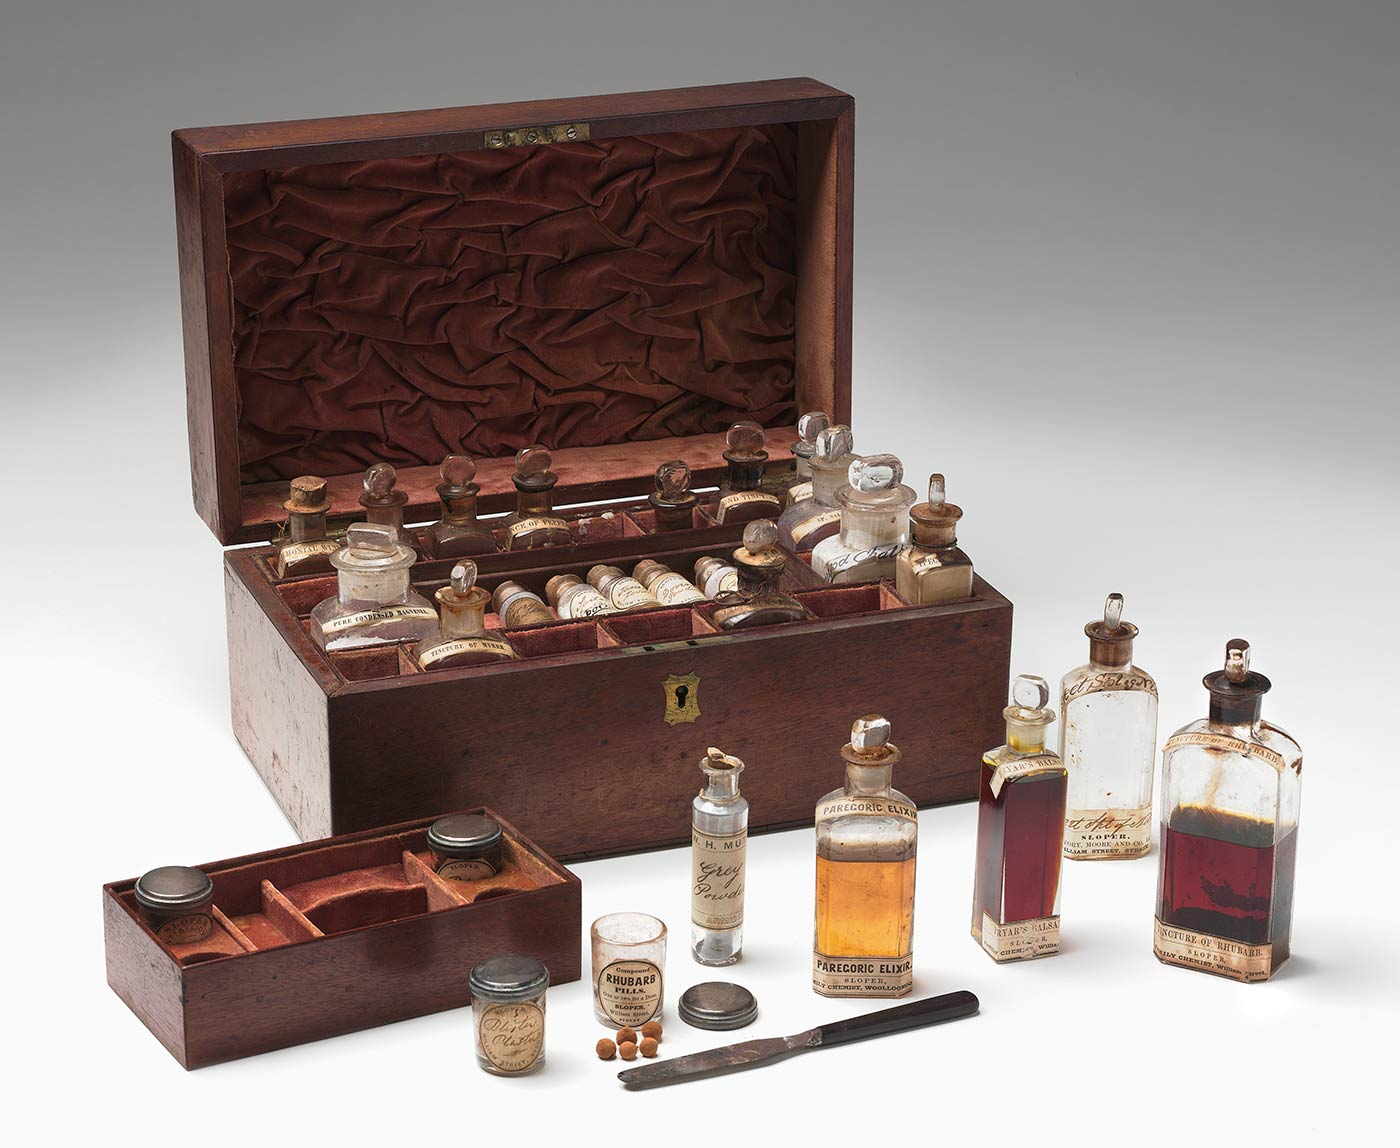 Wooden medicine chest with hinged lid. The interior is lined in red velvet with compartments around the edge and one central compartment holding two trays that lift out. The chest contains 27 bottles and jars holding medicinal substances and a small knife.